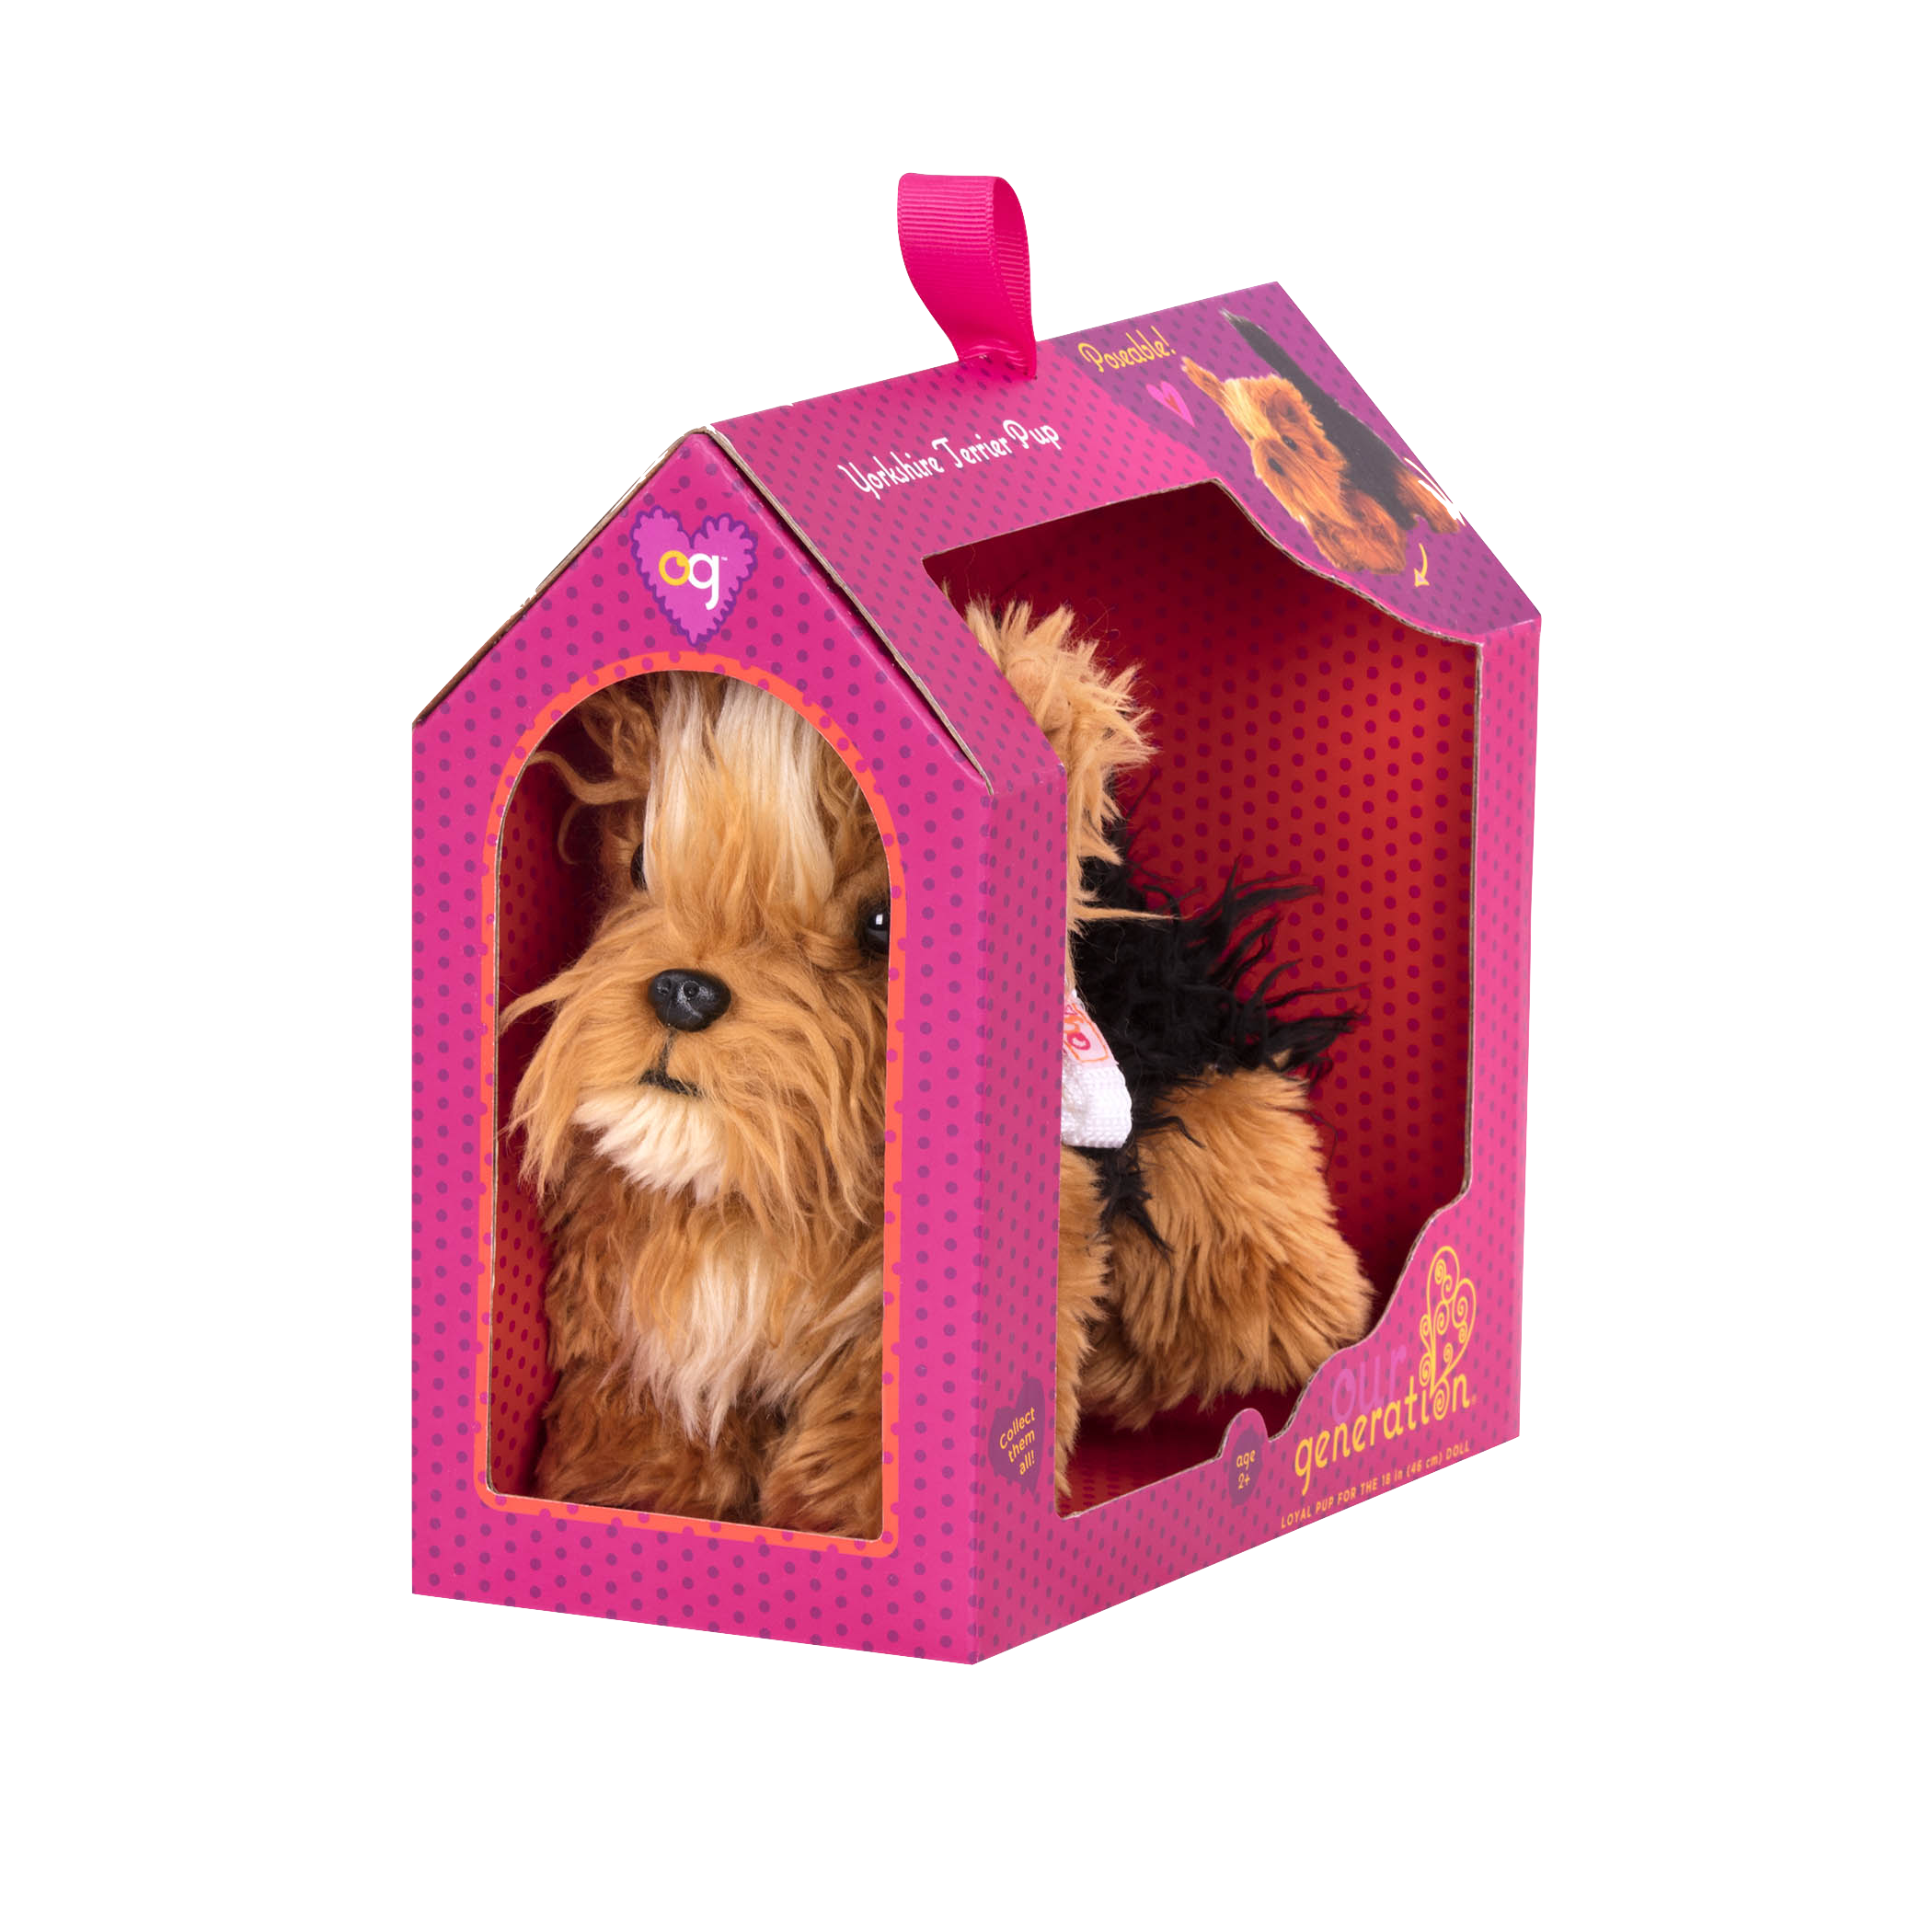 package detail for Yorkshire Terrier Pup